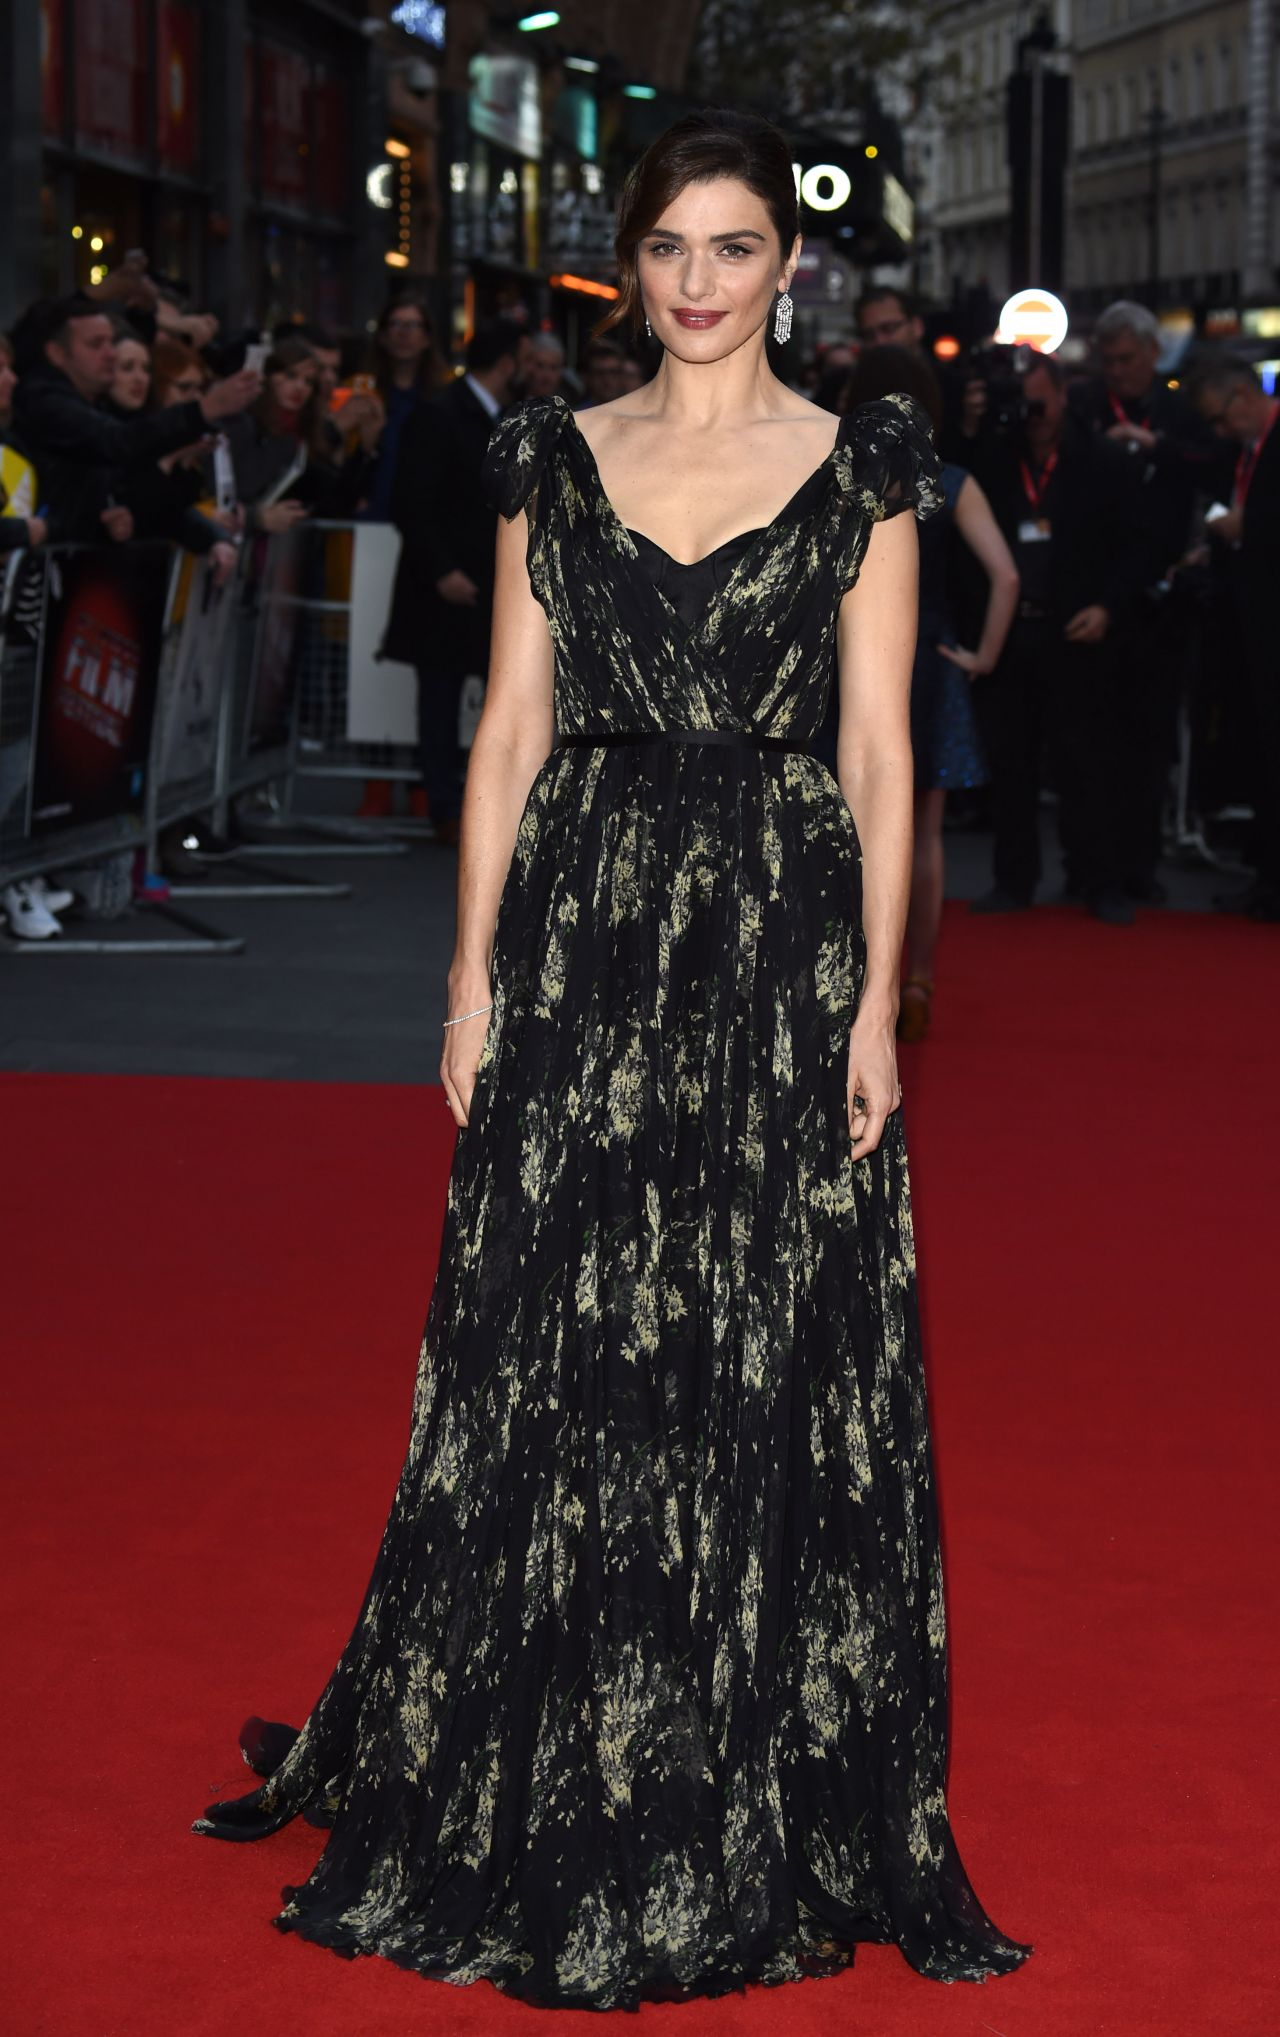 rachel-weisz-the-lobster-dare-gala-bfi-london-film-festival_3